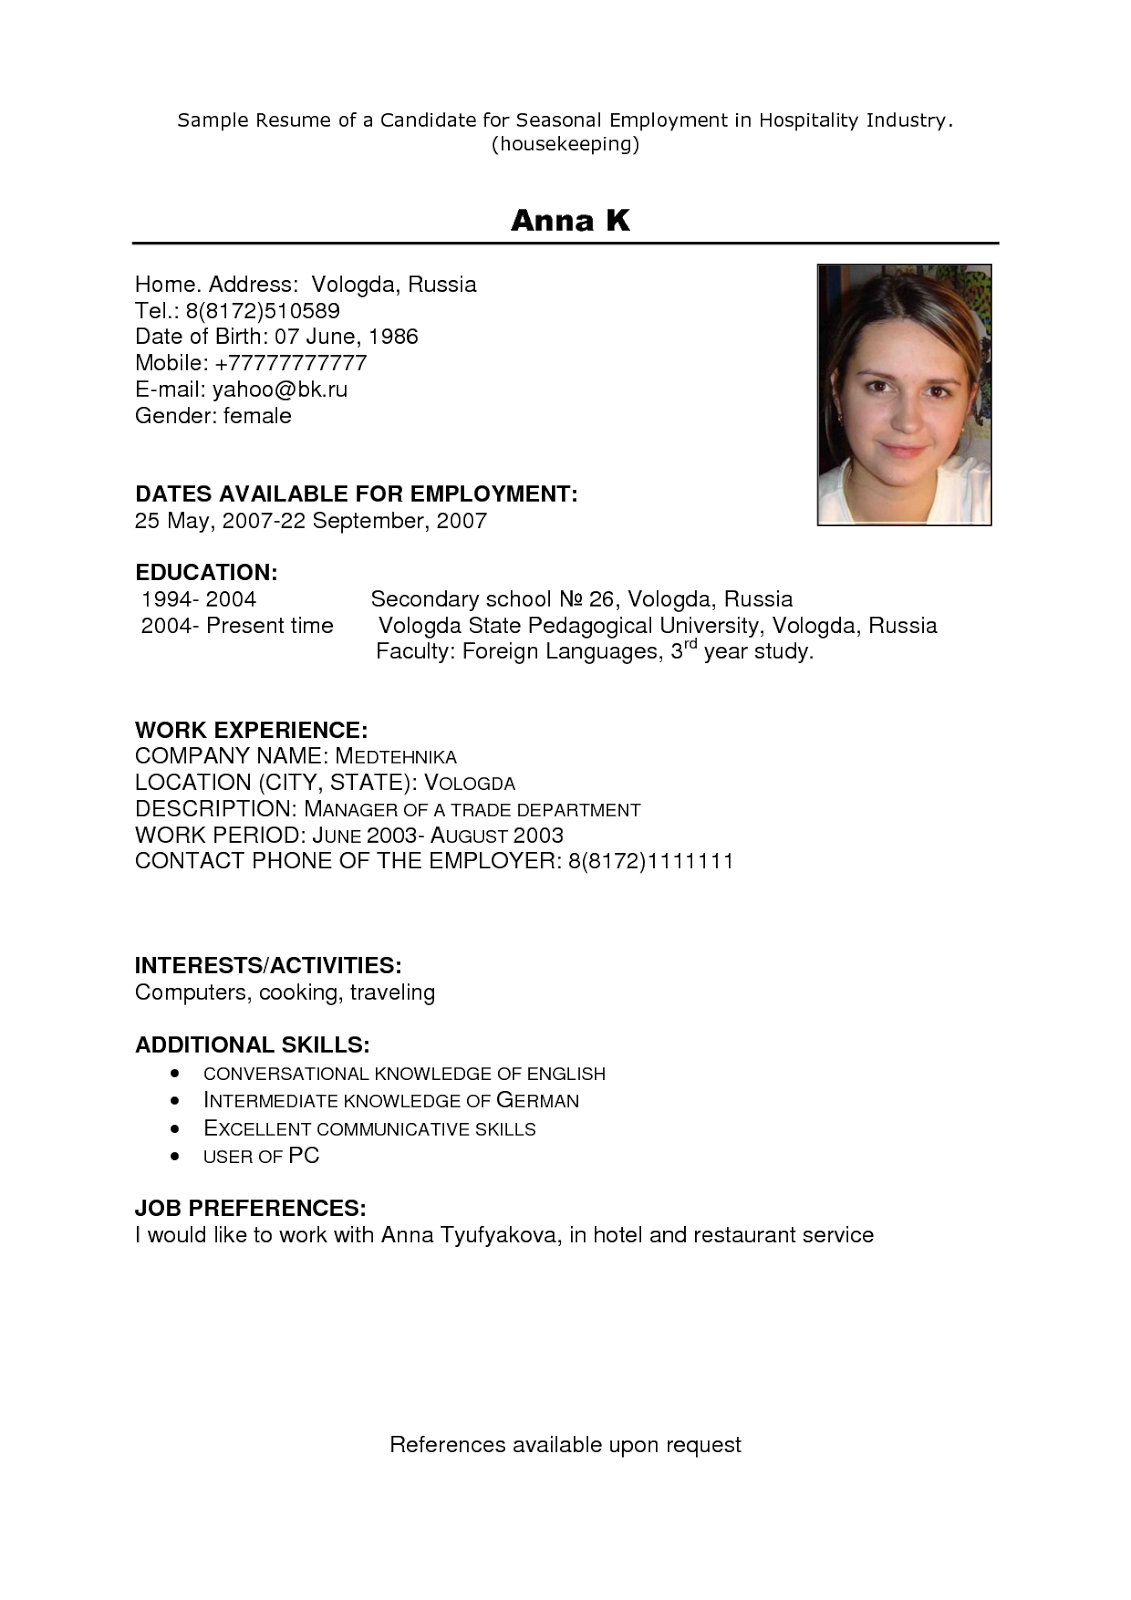 examples of resumes resume examples basic resume example resume - How To Get A Housekeeping Job